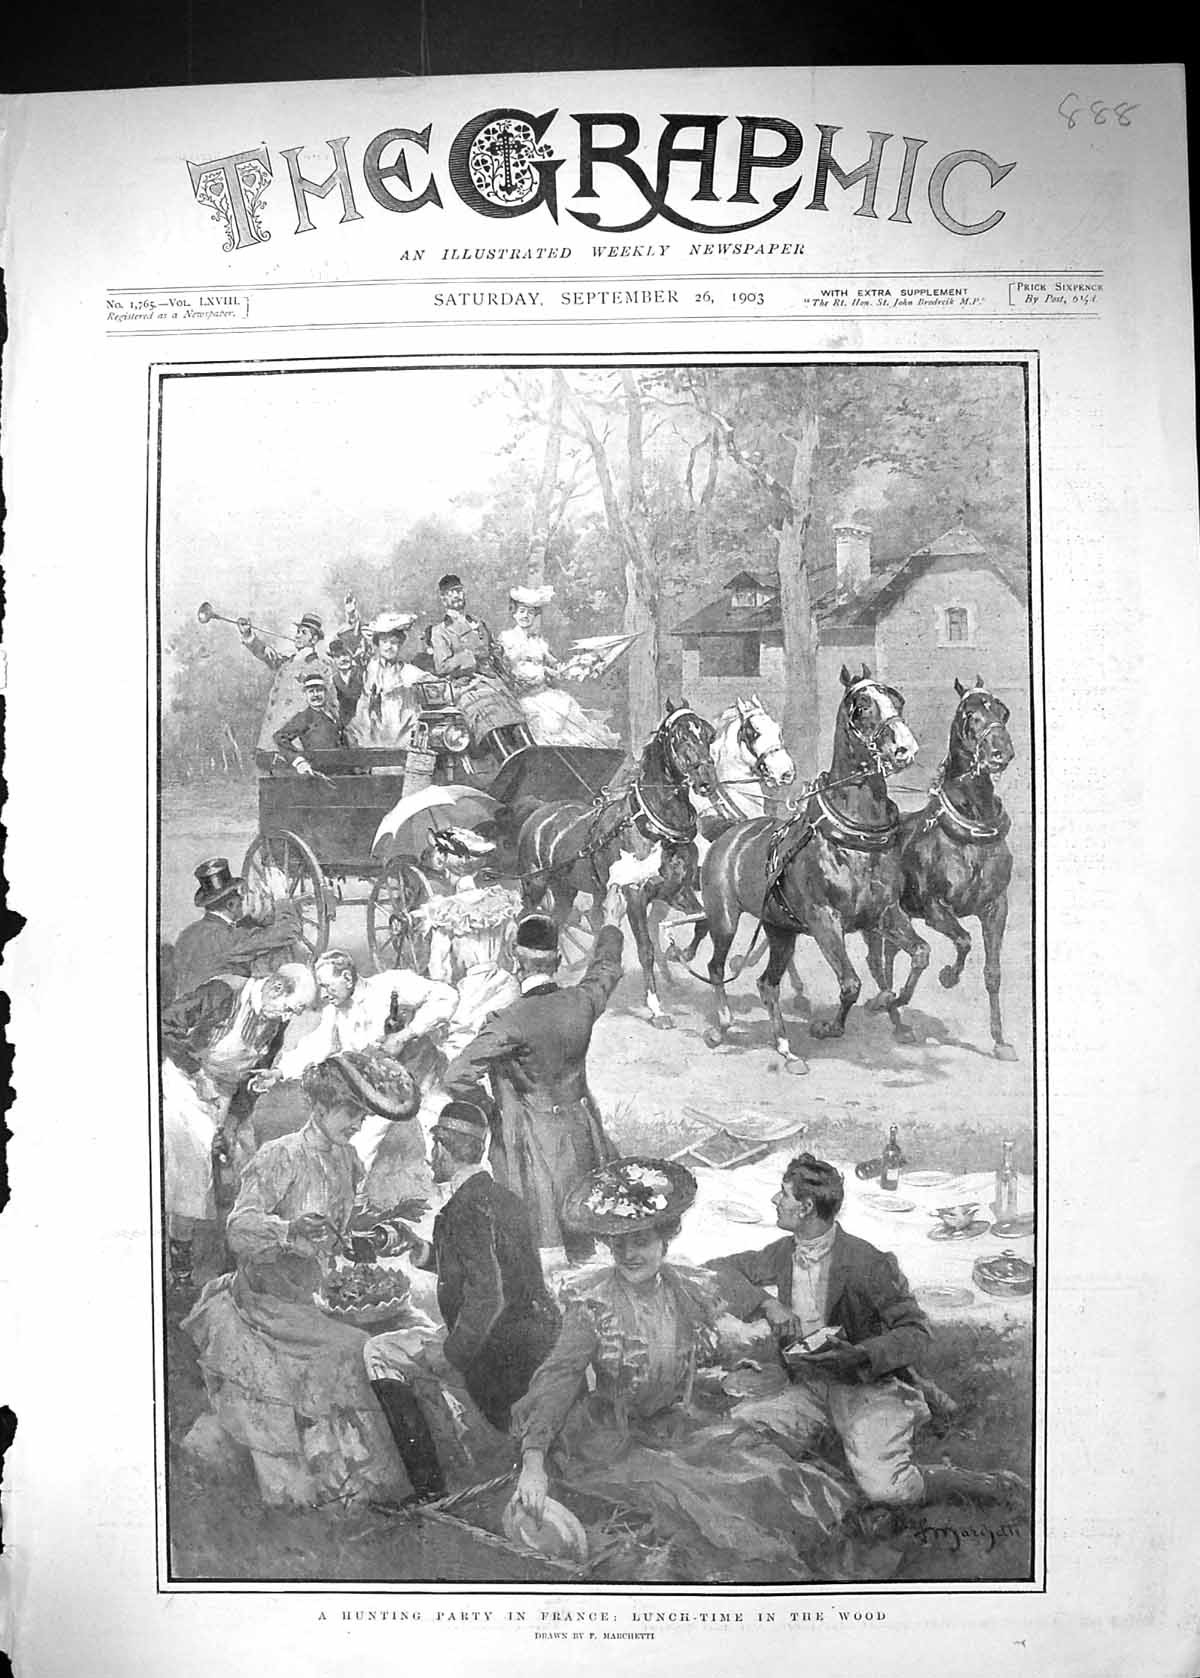 Original-Old-Antique-Print-1903-Hunting-Party-France-Lunch-Time-Wood-Marchetti